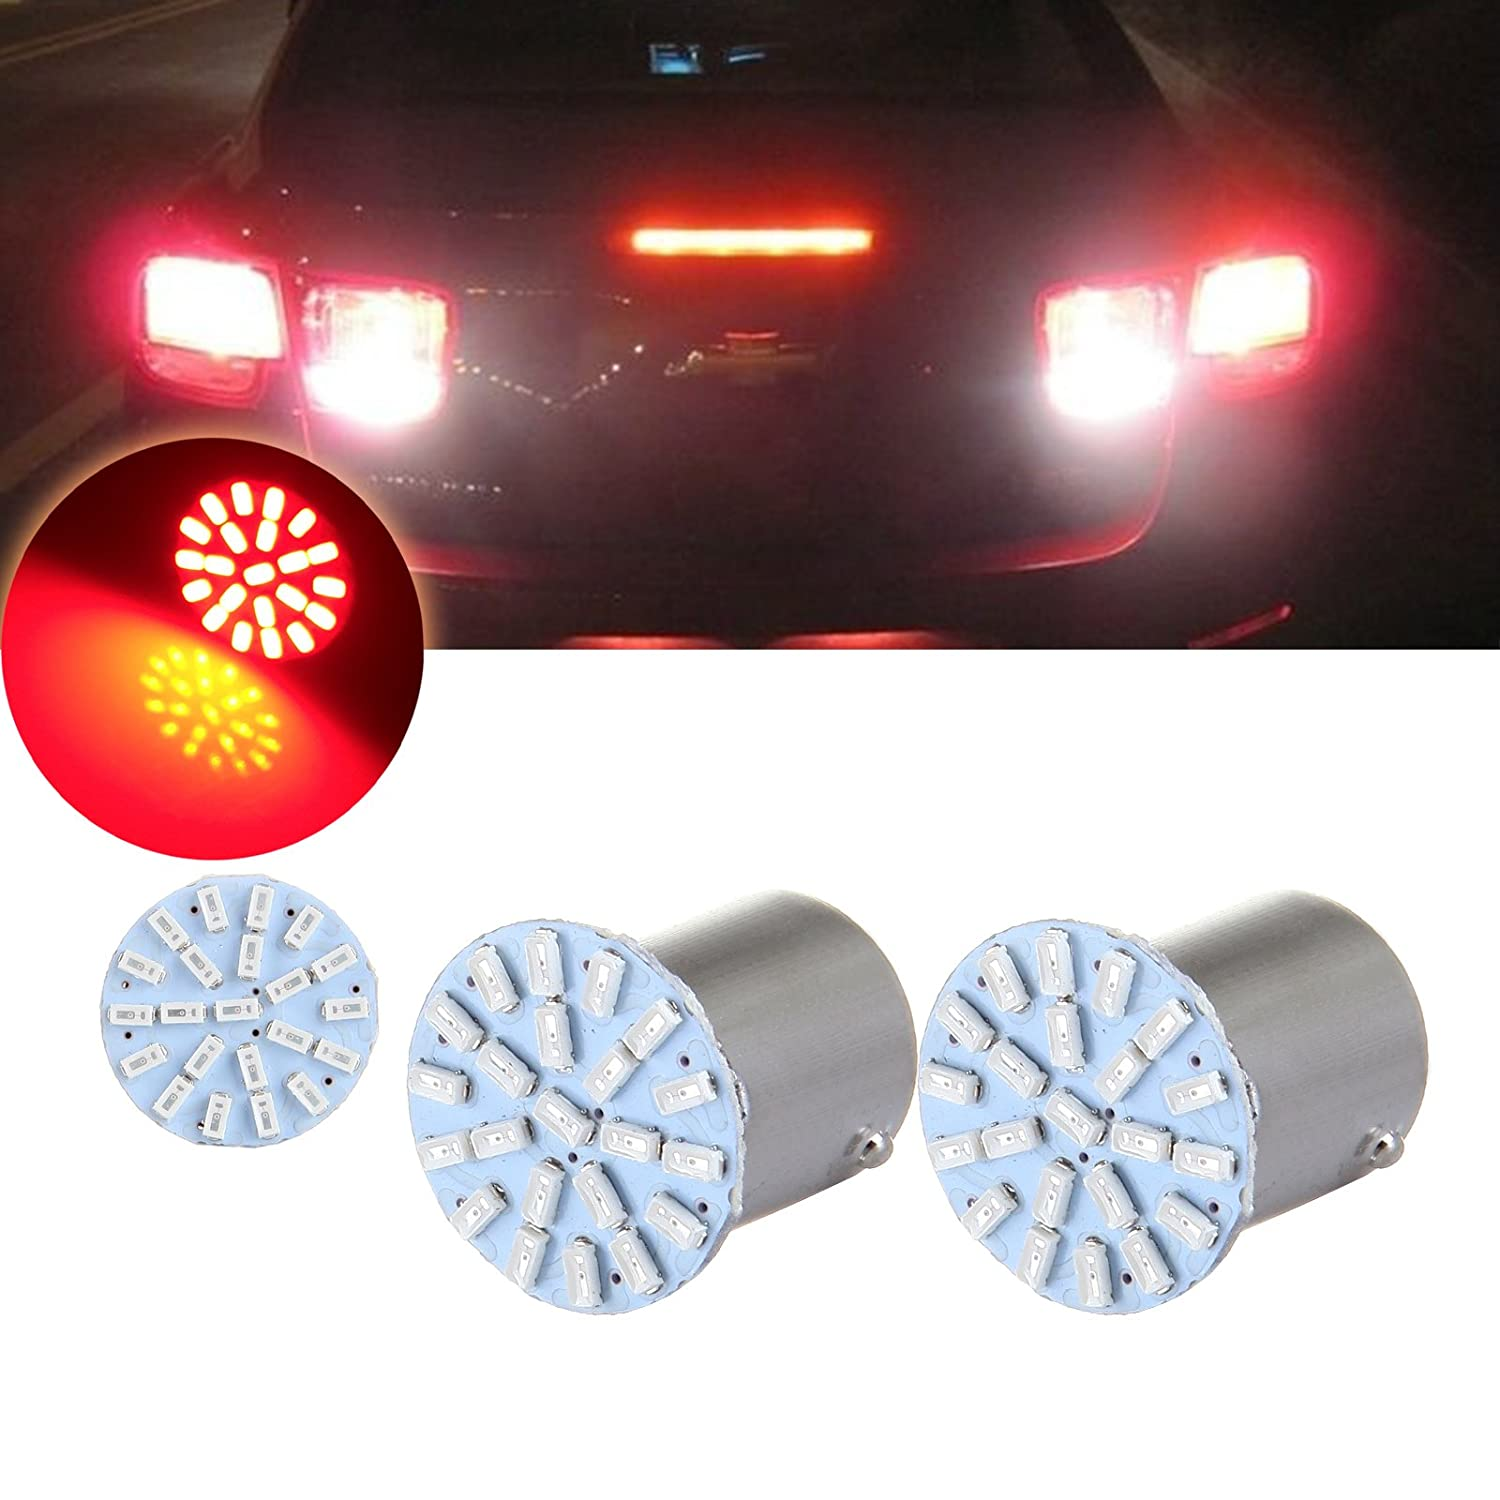 cciyu 2PCS 1156 LED Light Bulbs 22SMD EX Chipsets Red Light Replacement fit for Backup Reverse Light 803775-5210-1008431